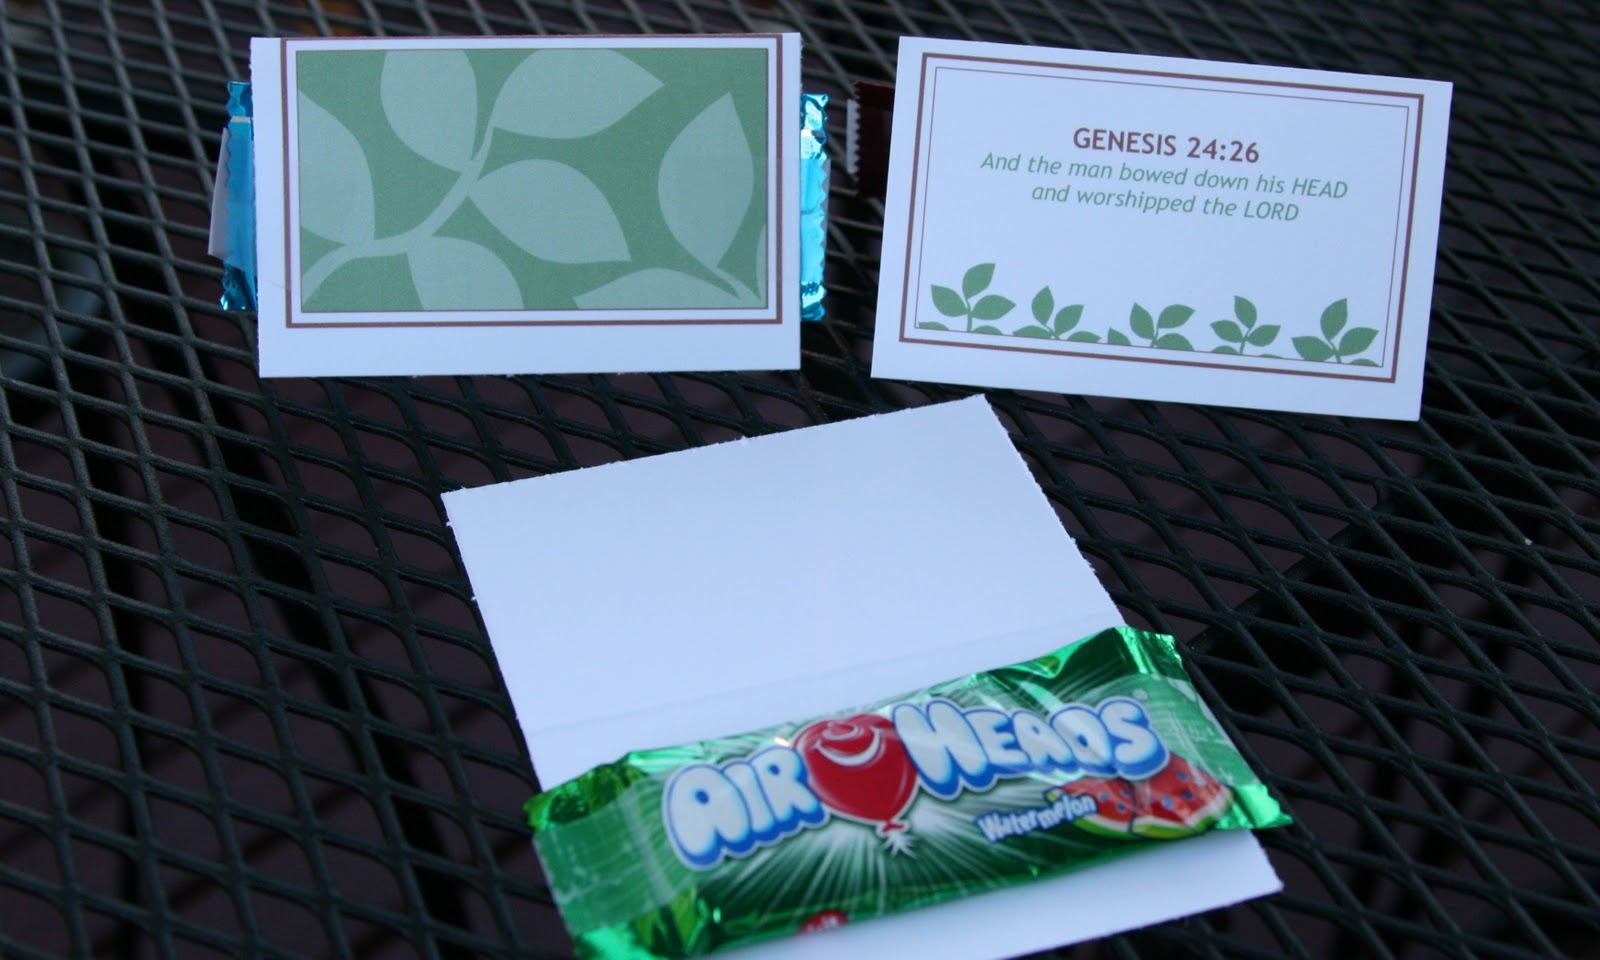 Vacation bible school crafts ideas - The Sweet Gospel Message Vacation Bible School Ideas